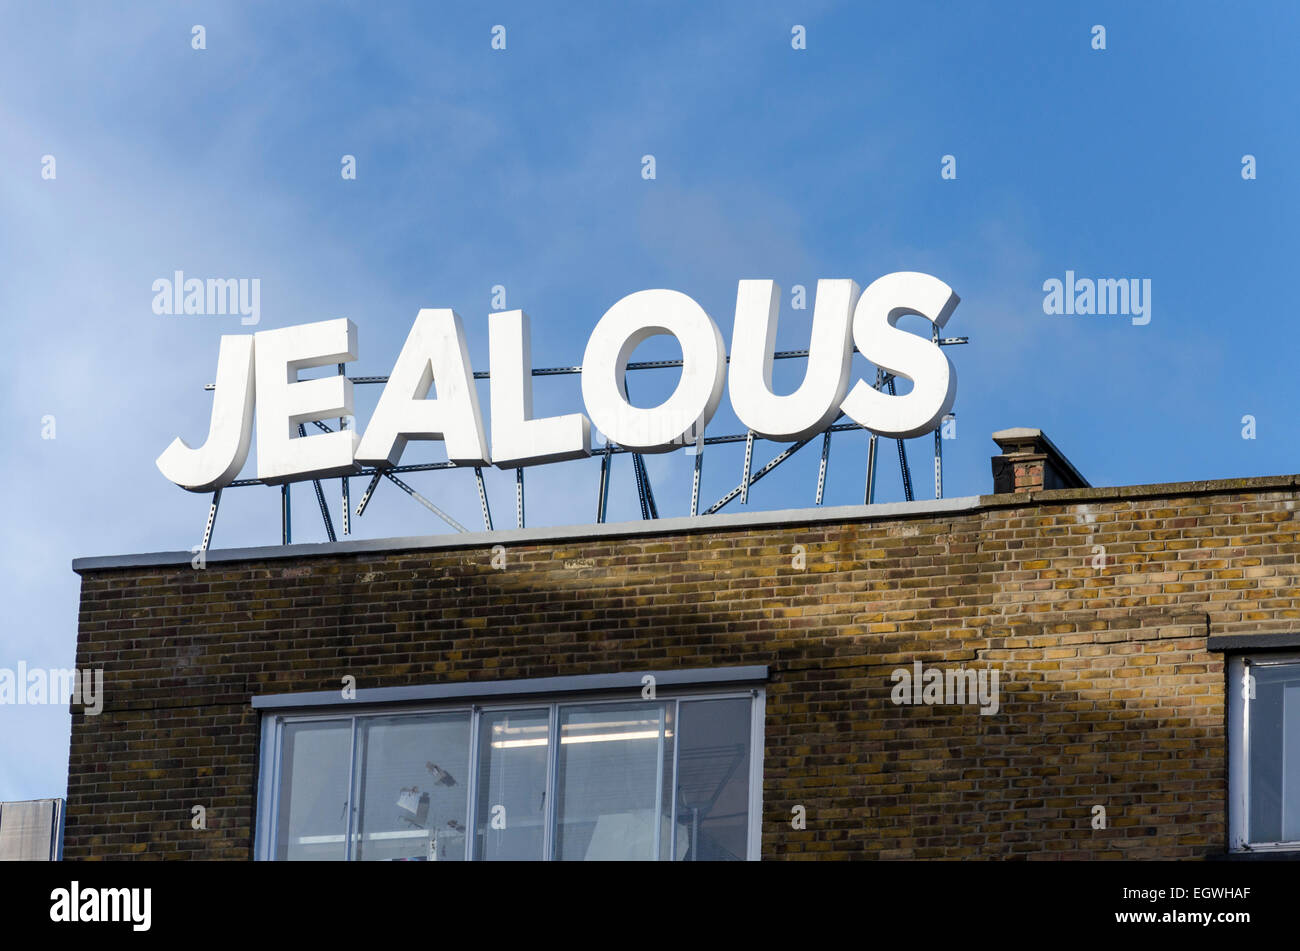 Sign for Jealous Gallery and Print Studio, Shoreditch, London, UK - Stock Image